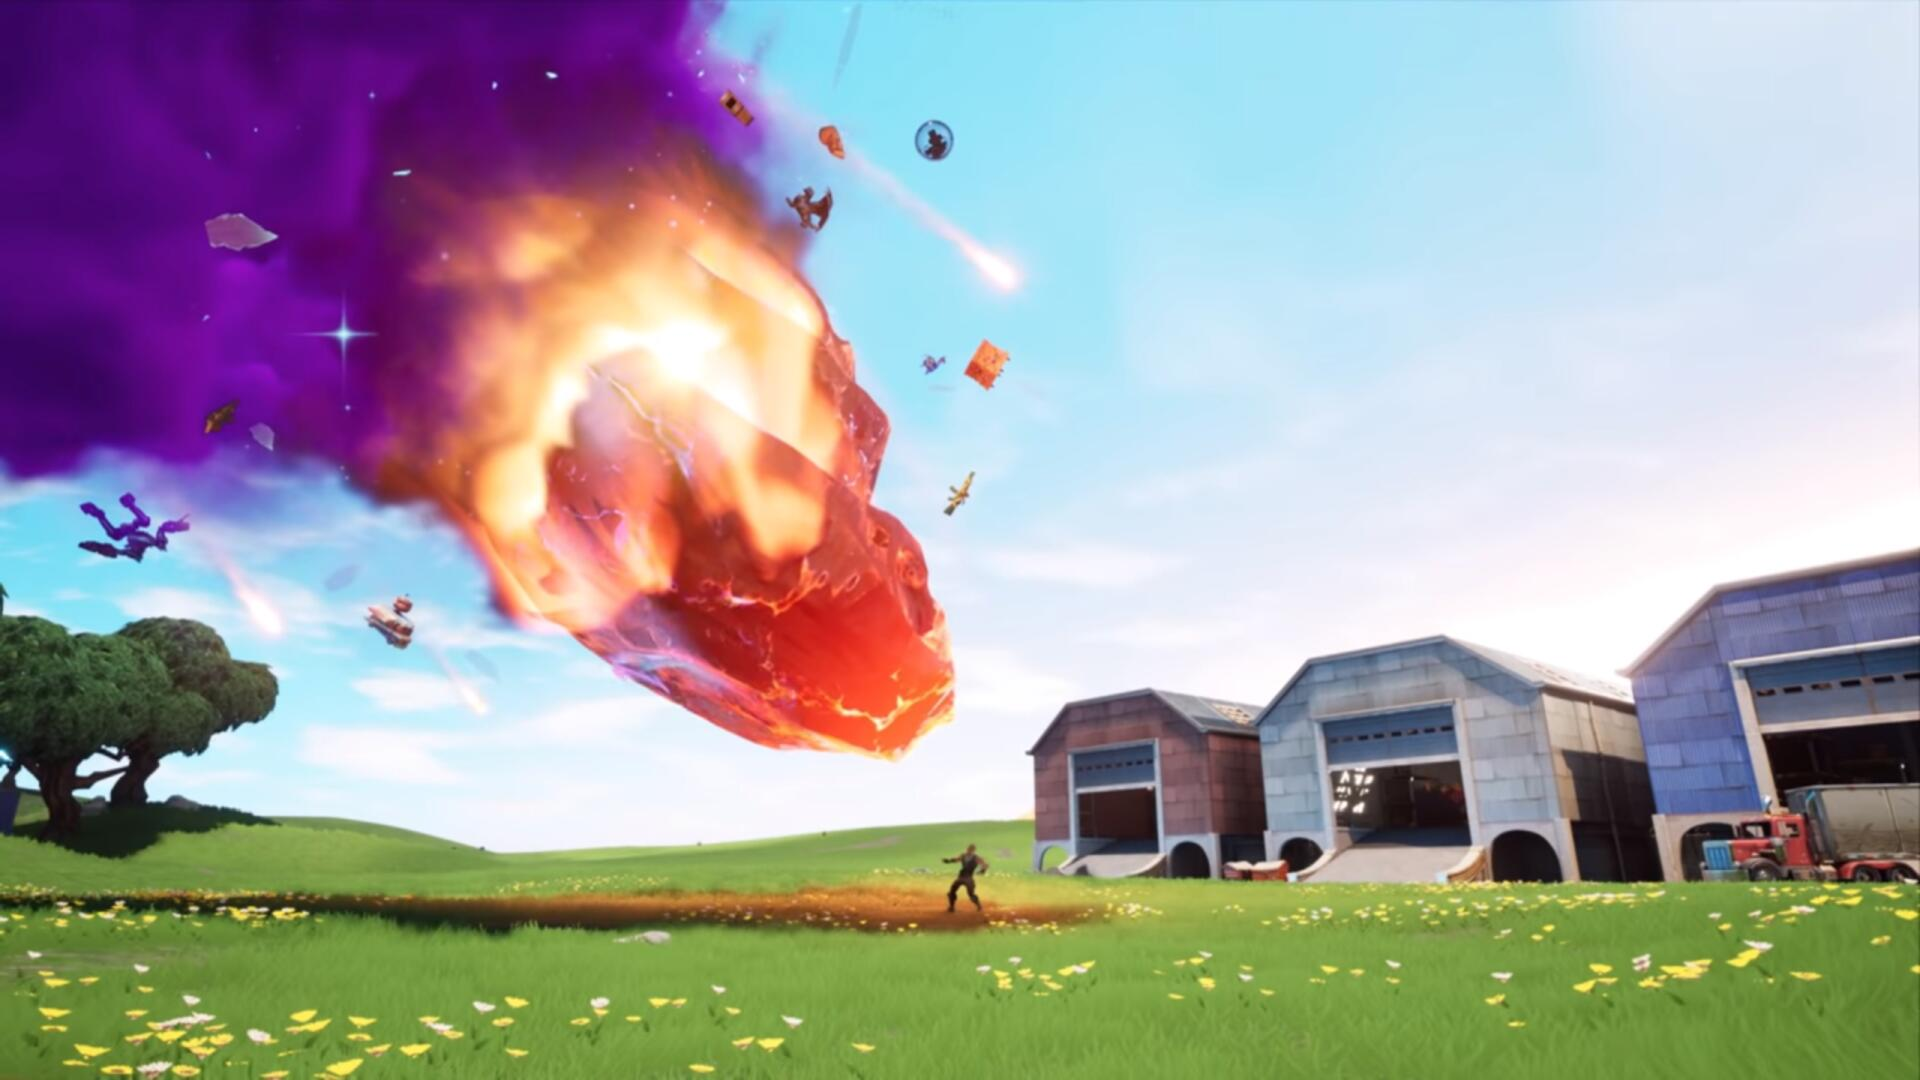 Heres Your First Glimpse Of Fortnite Chapter 2 Thanks To